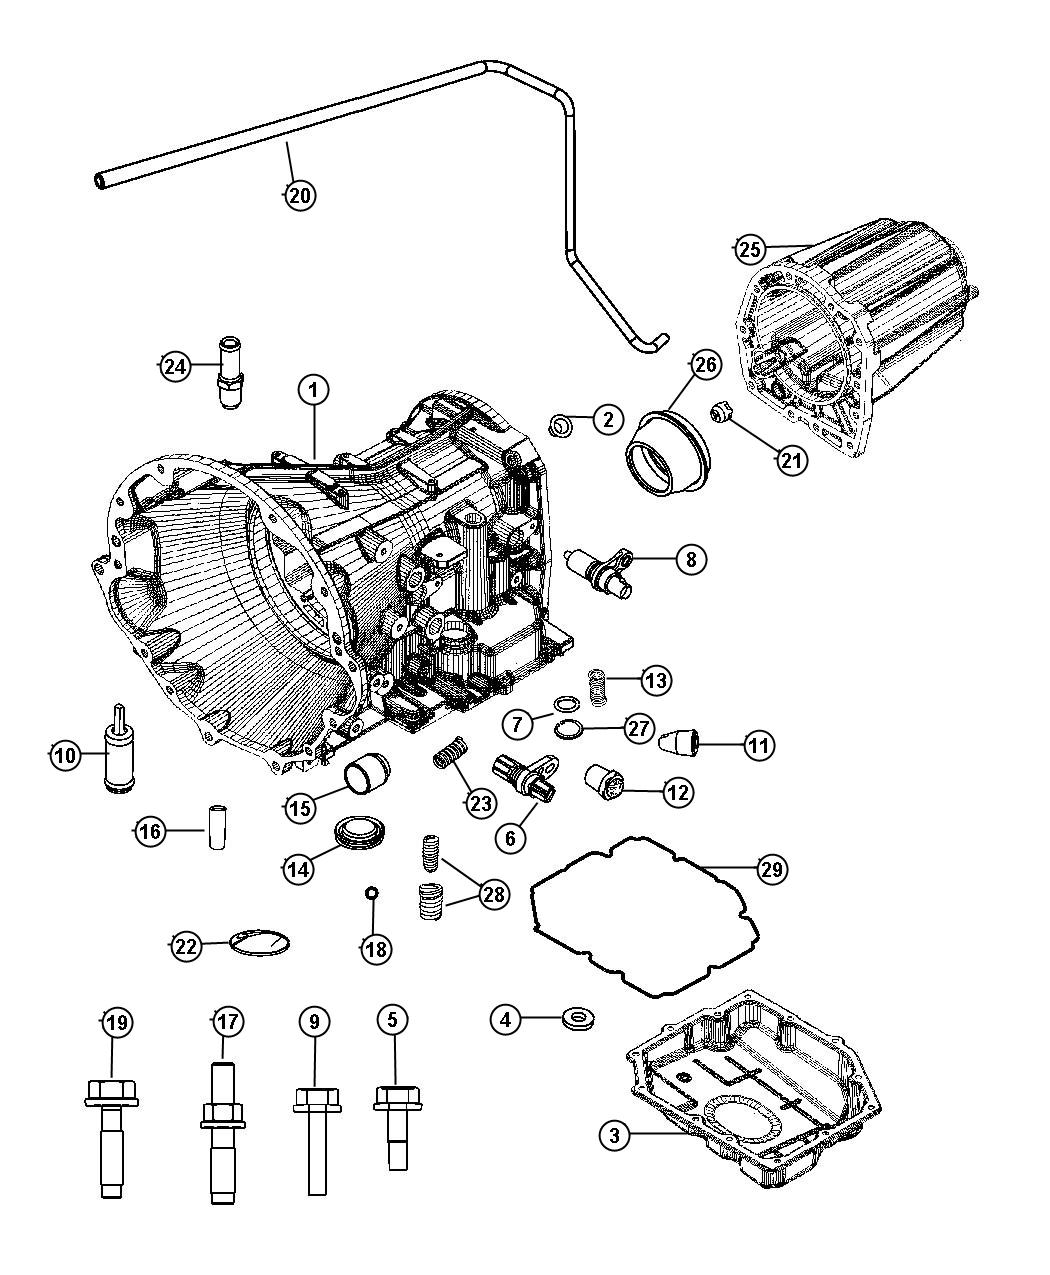 diagram] 1997 dodge 1500 transmission diagram full version hd quality transmission  diagram - diagramsashaa.brunisport.it  bruni sport